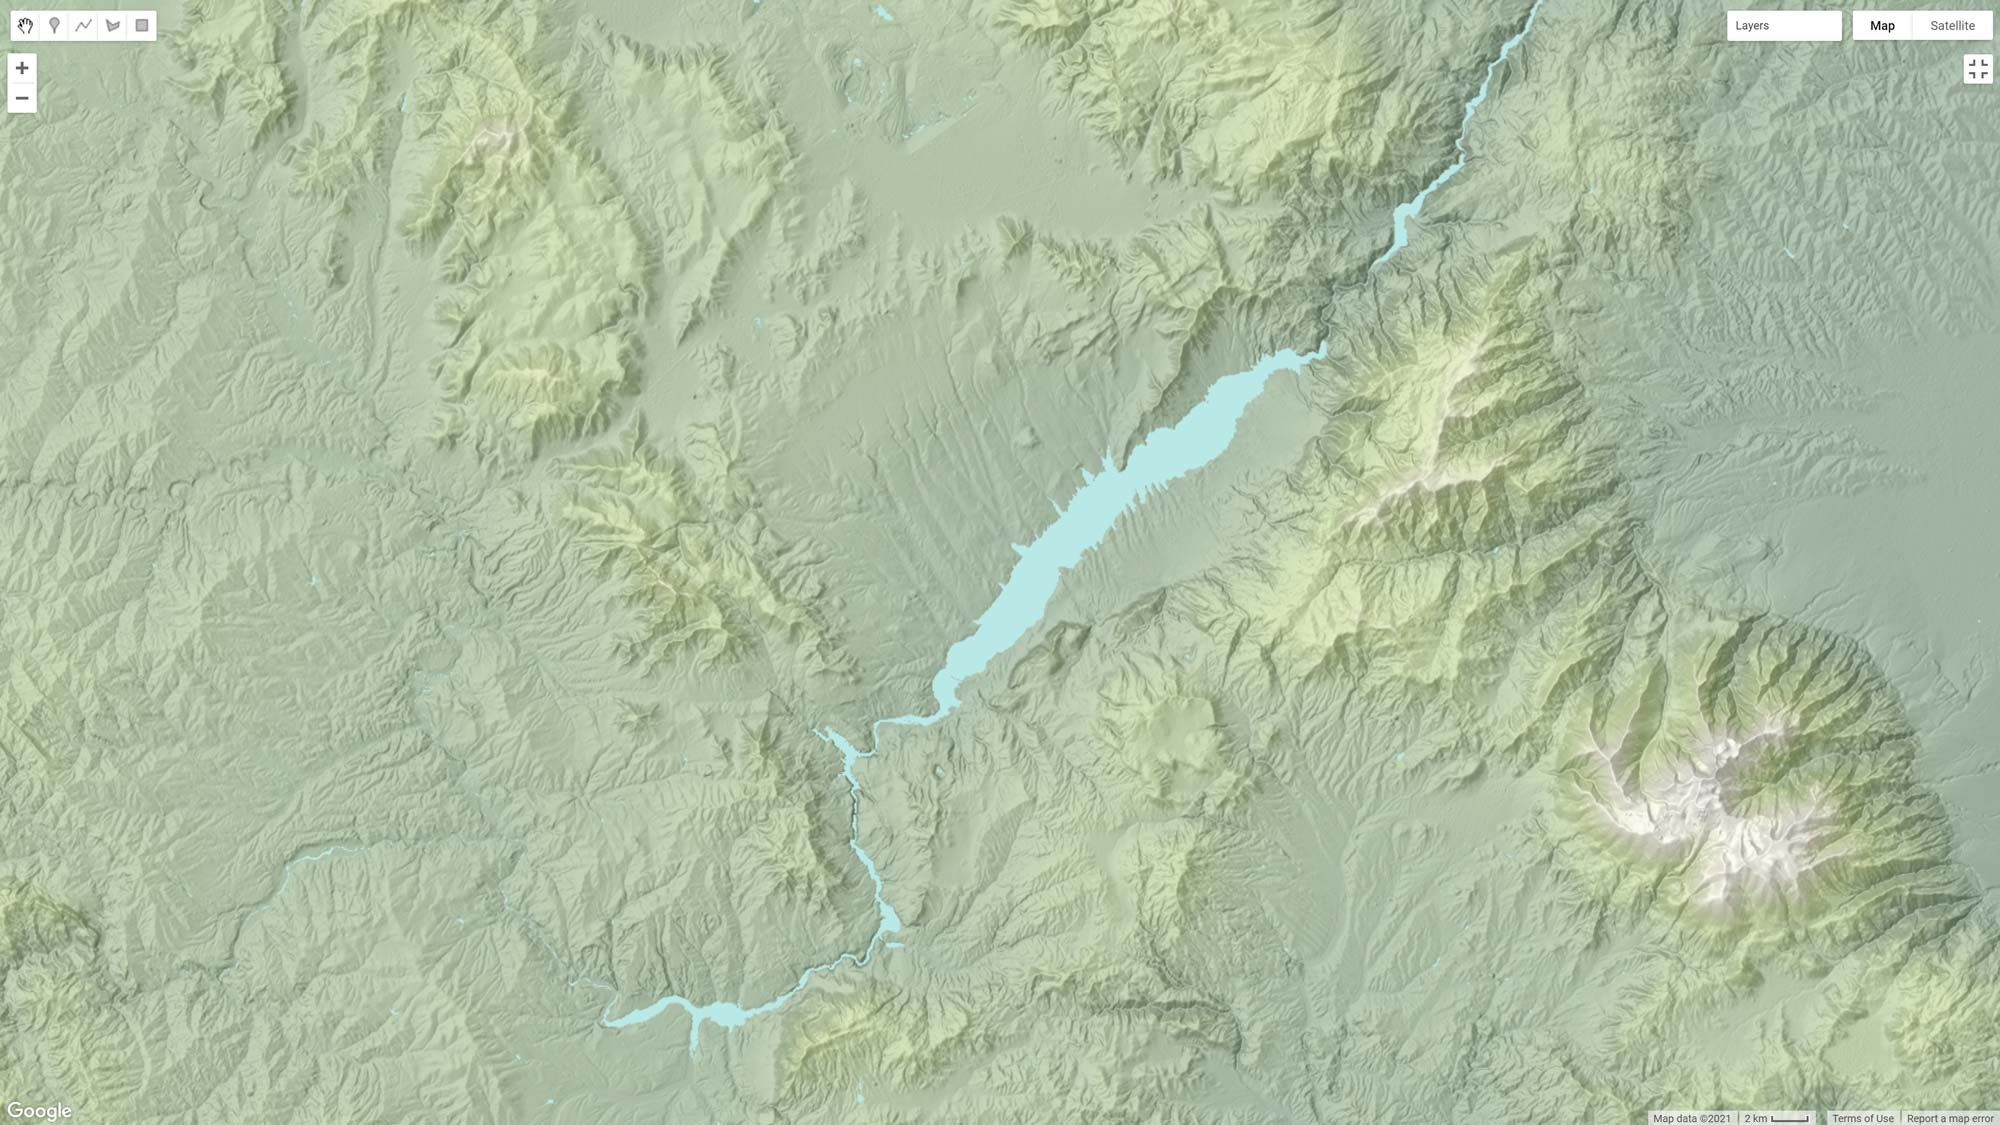 Picture 3: Adding water bodies on the terrain.